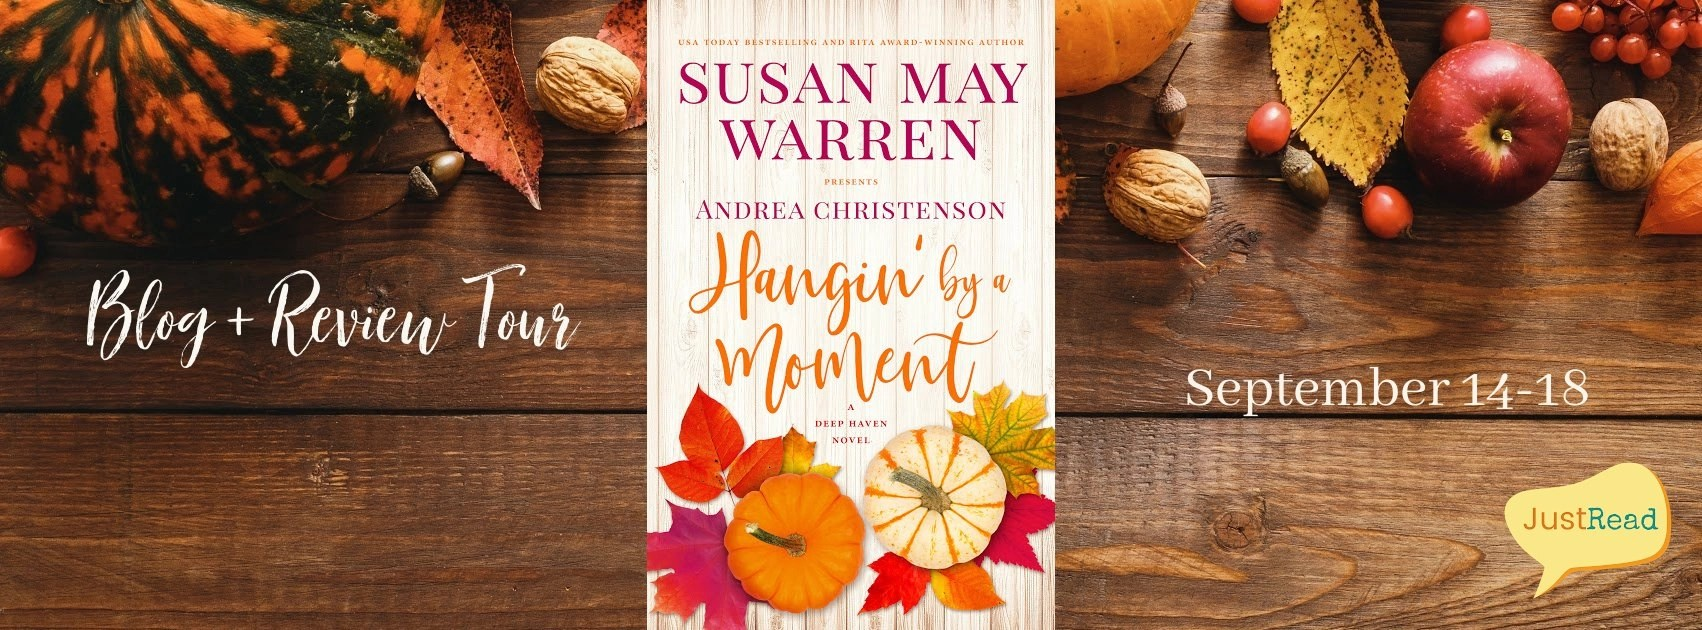 Welcome to the Hangin' by a Moment Blog + Review Tour & Giveaway!